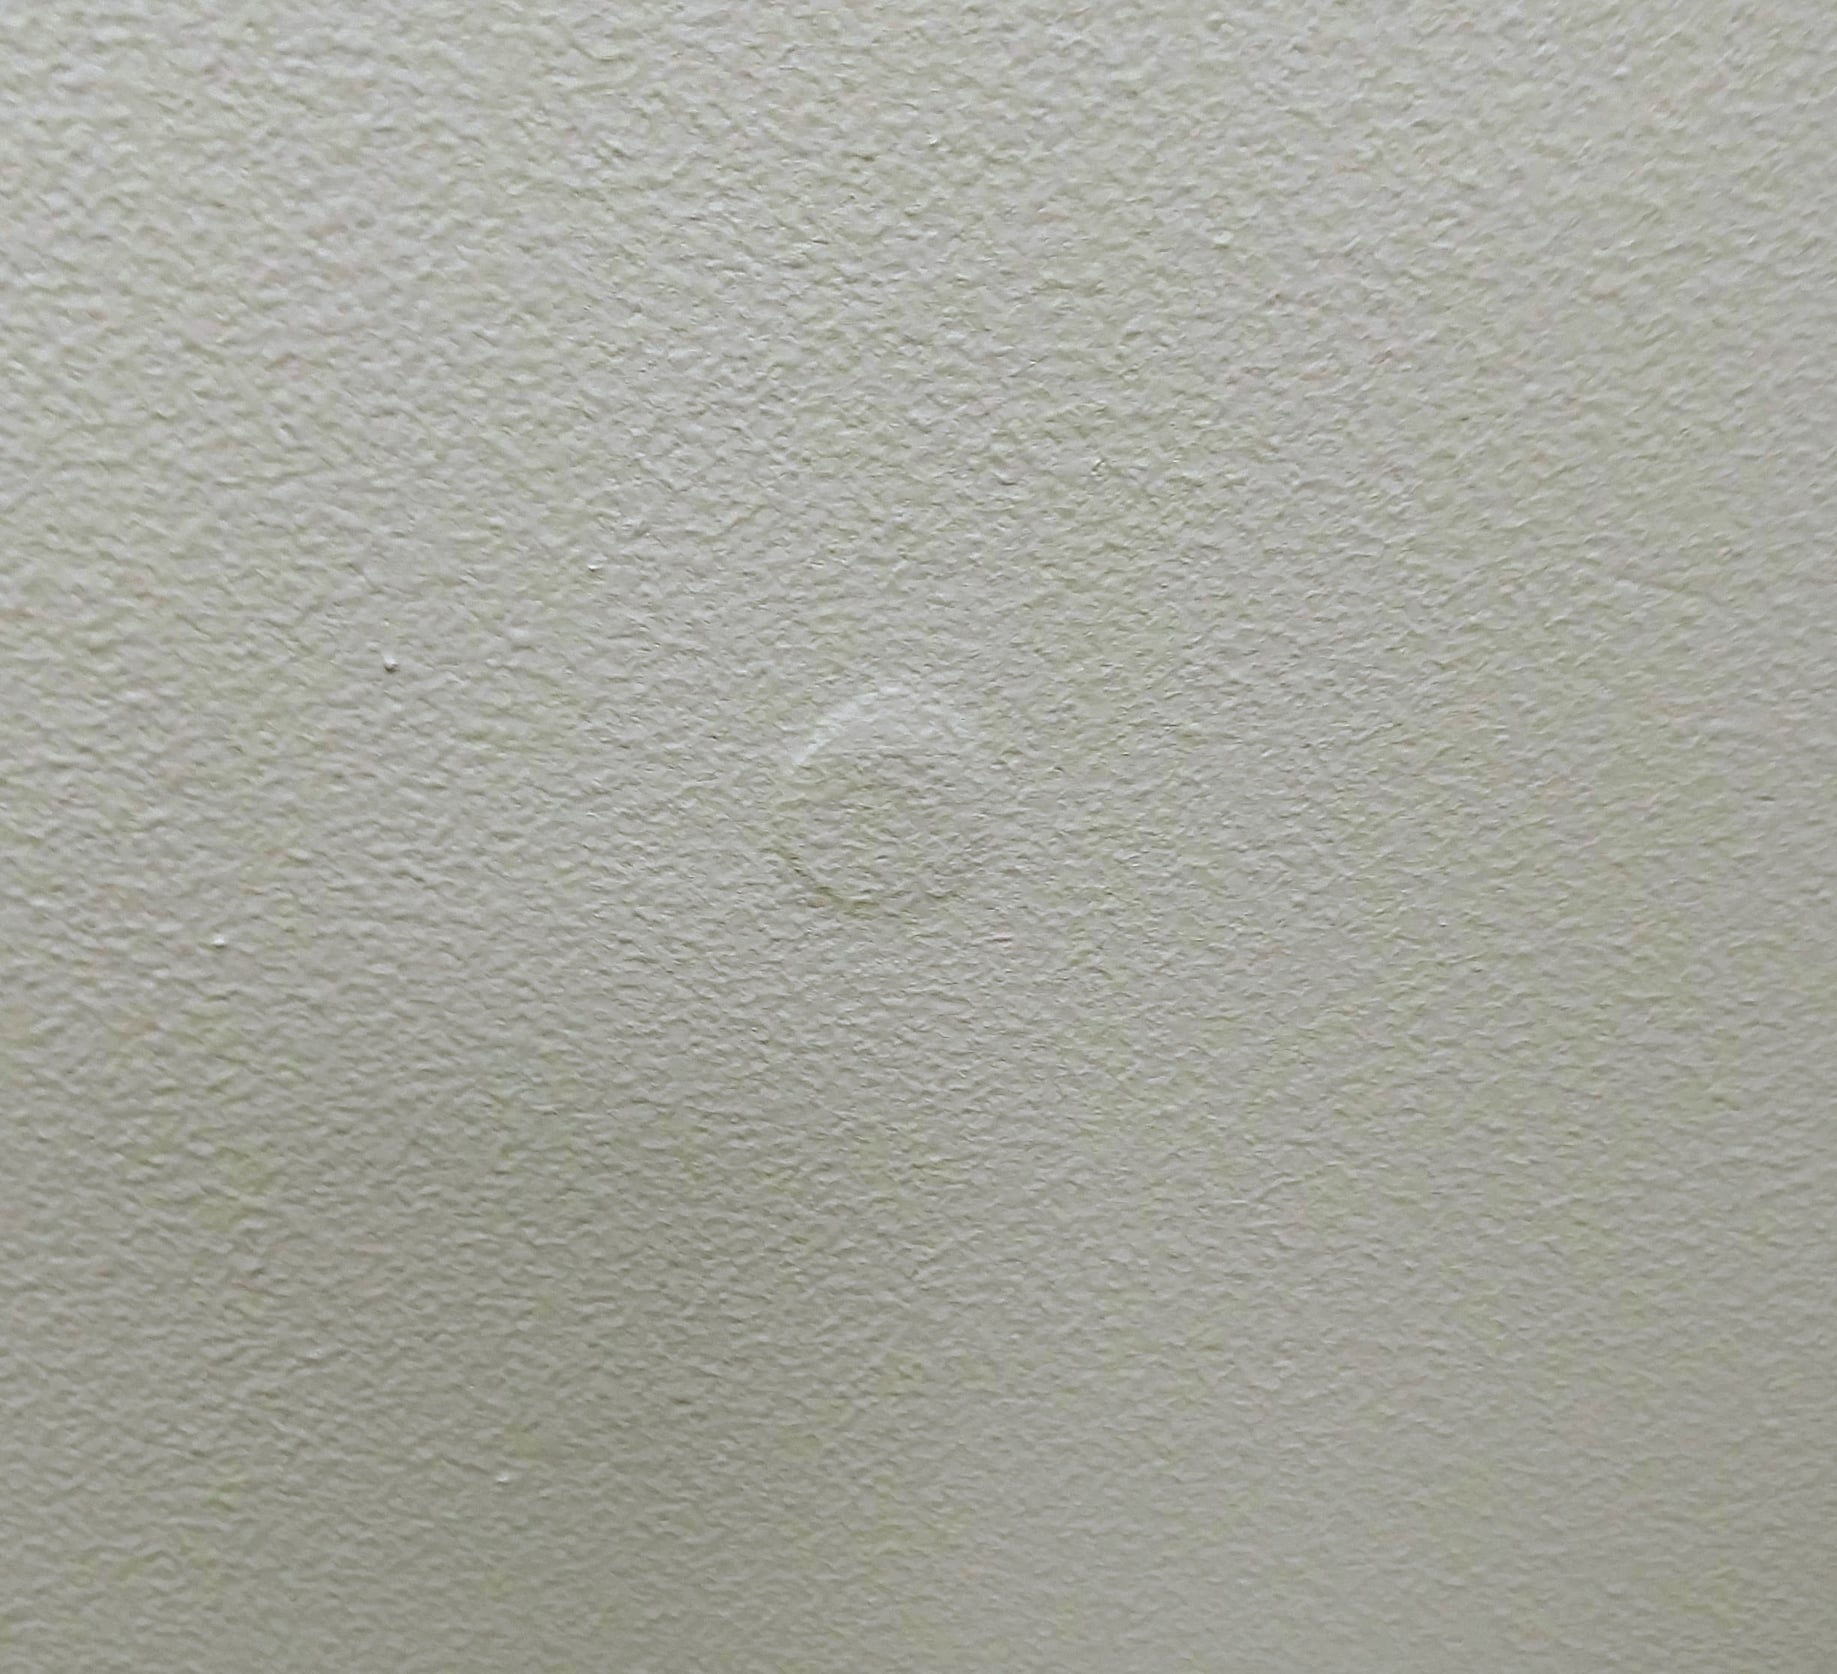 How To Repair Drywall Pops